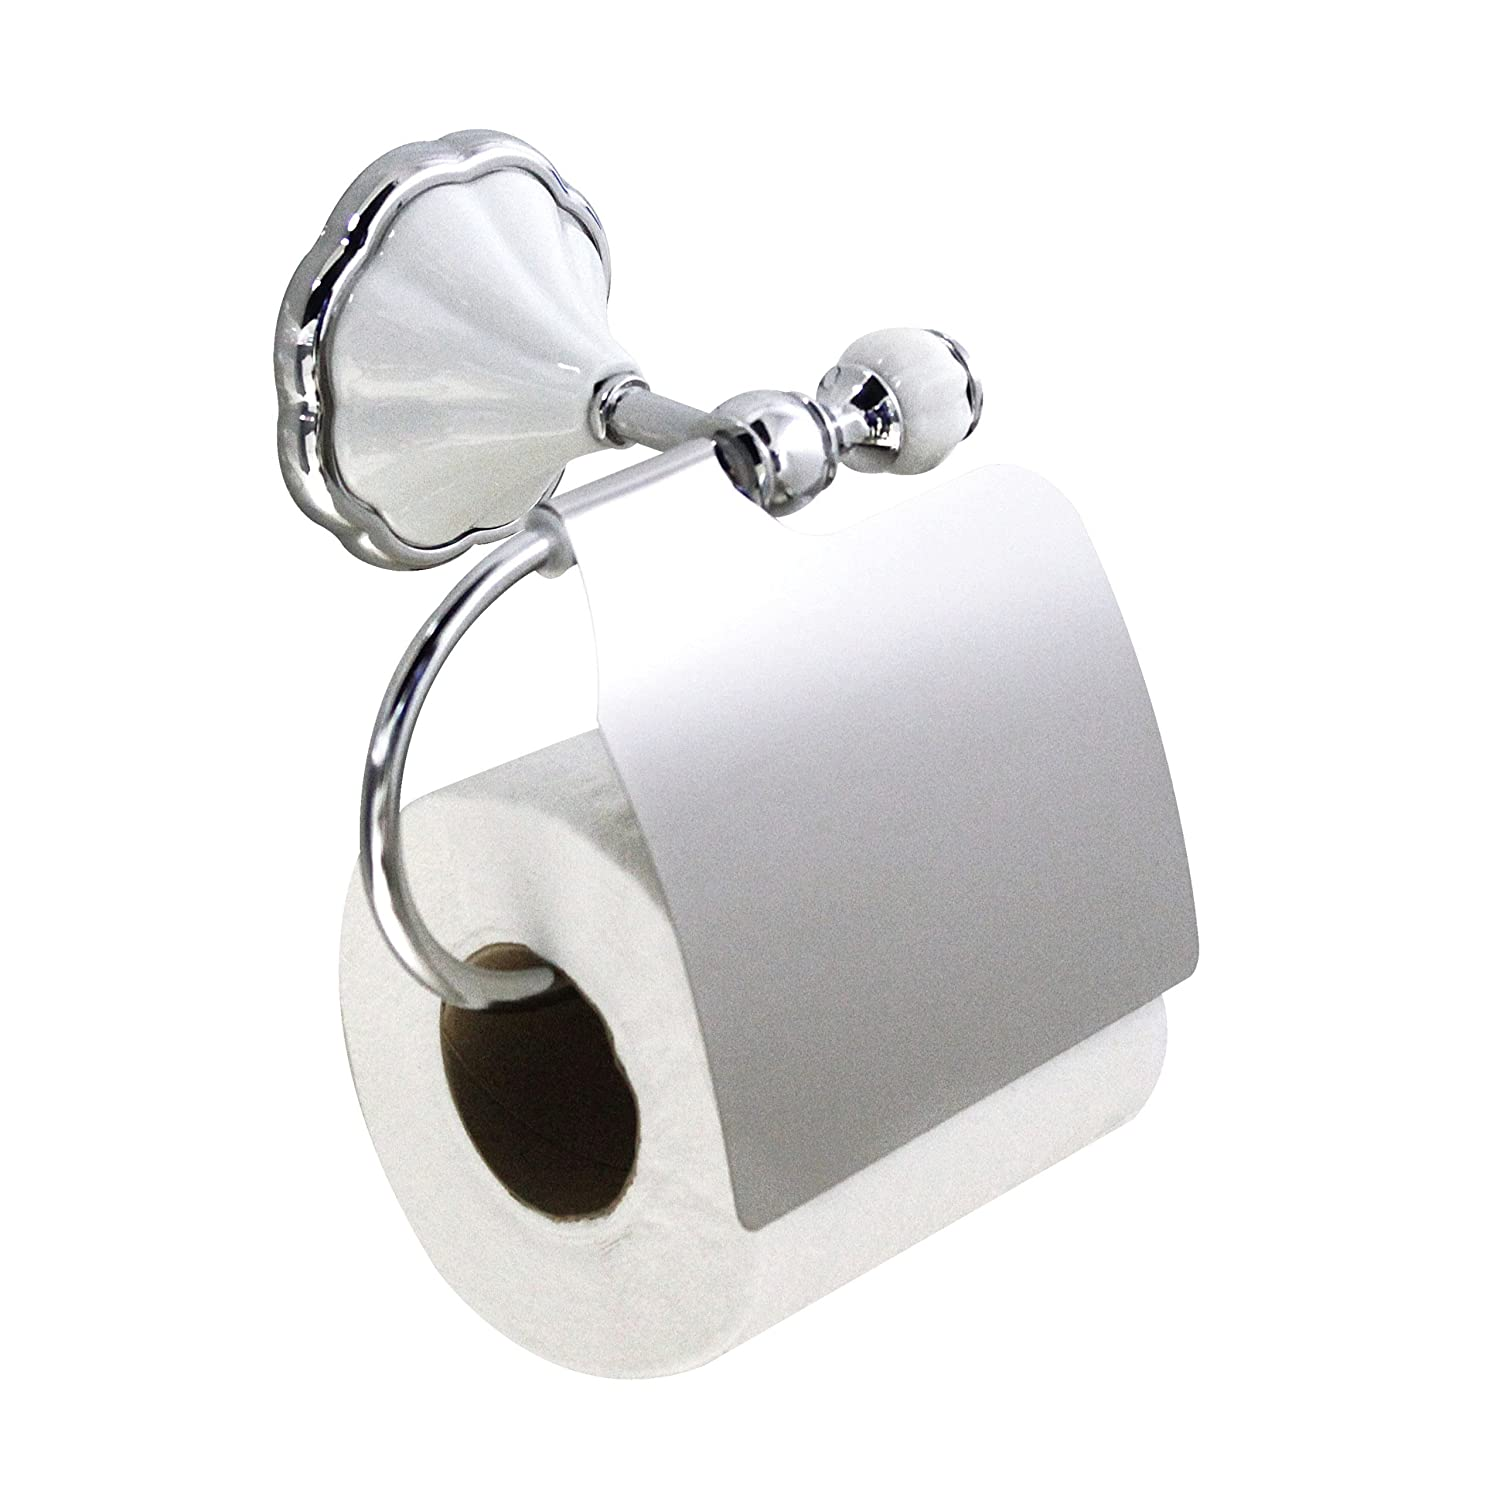 modona 9955 a toilet paper holder with cover white porcelain and polished chro ebay. Black Bedroom Furniture Sets. Home Design Ideas